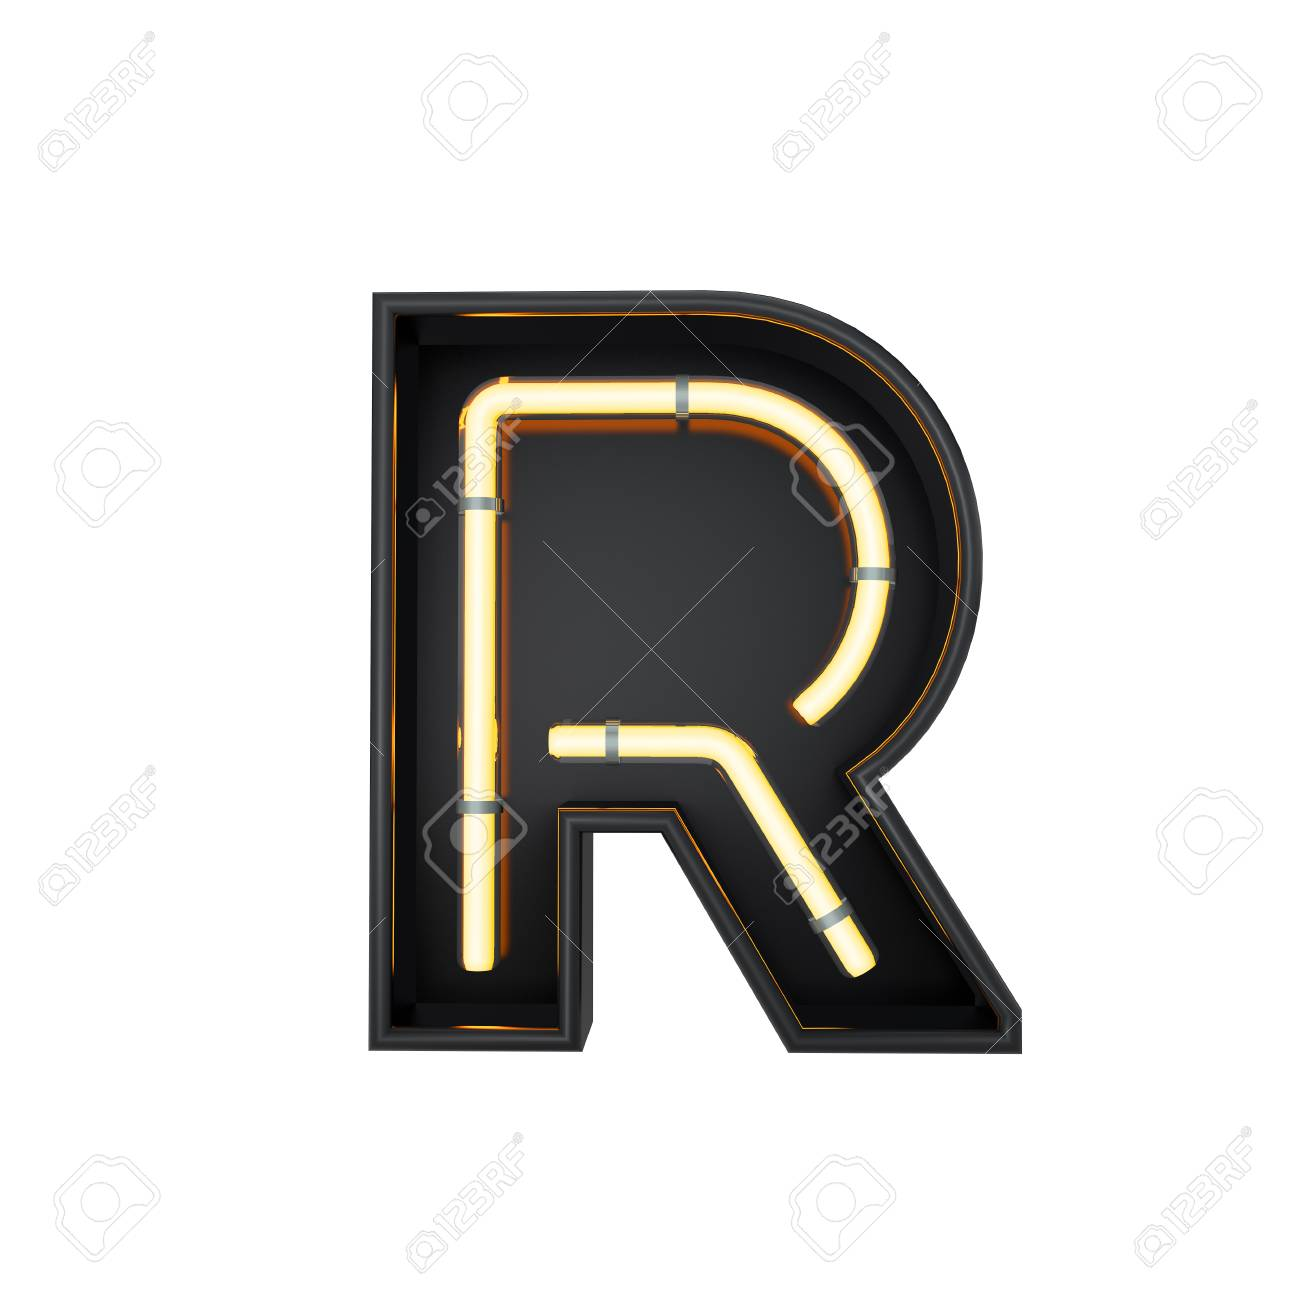 Neon style light letter r glowing neon capital letter 3d rendering neon style light letter r glowing neon capital letter 3d rendering stock photo thecheapjerseys Image collections